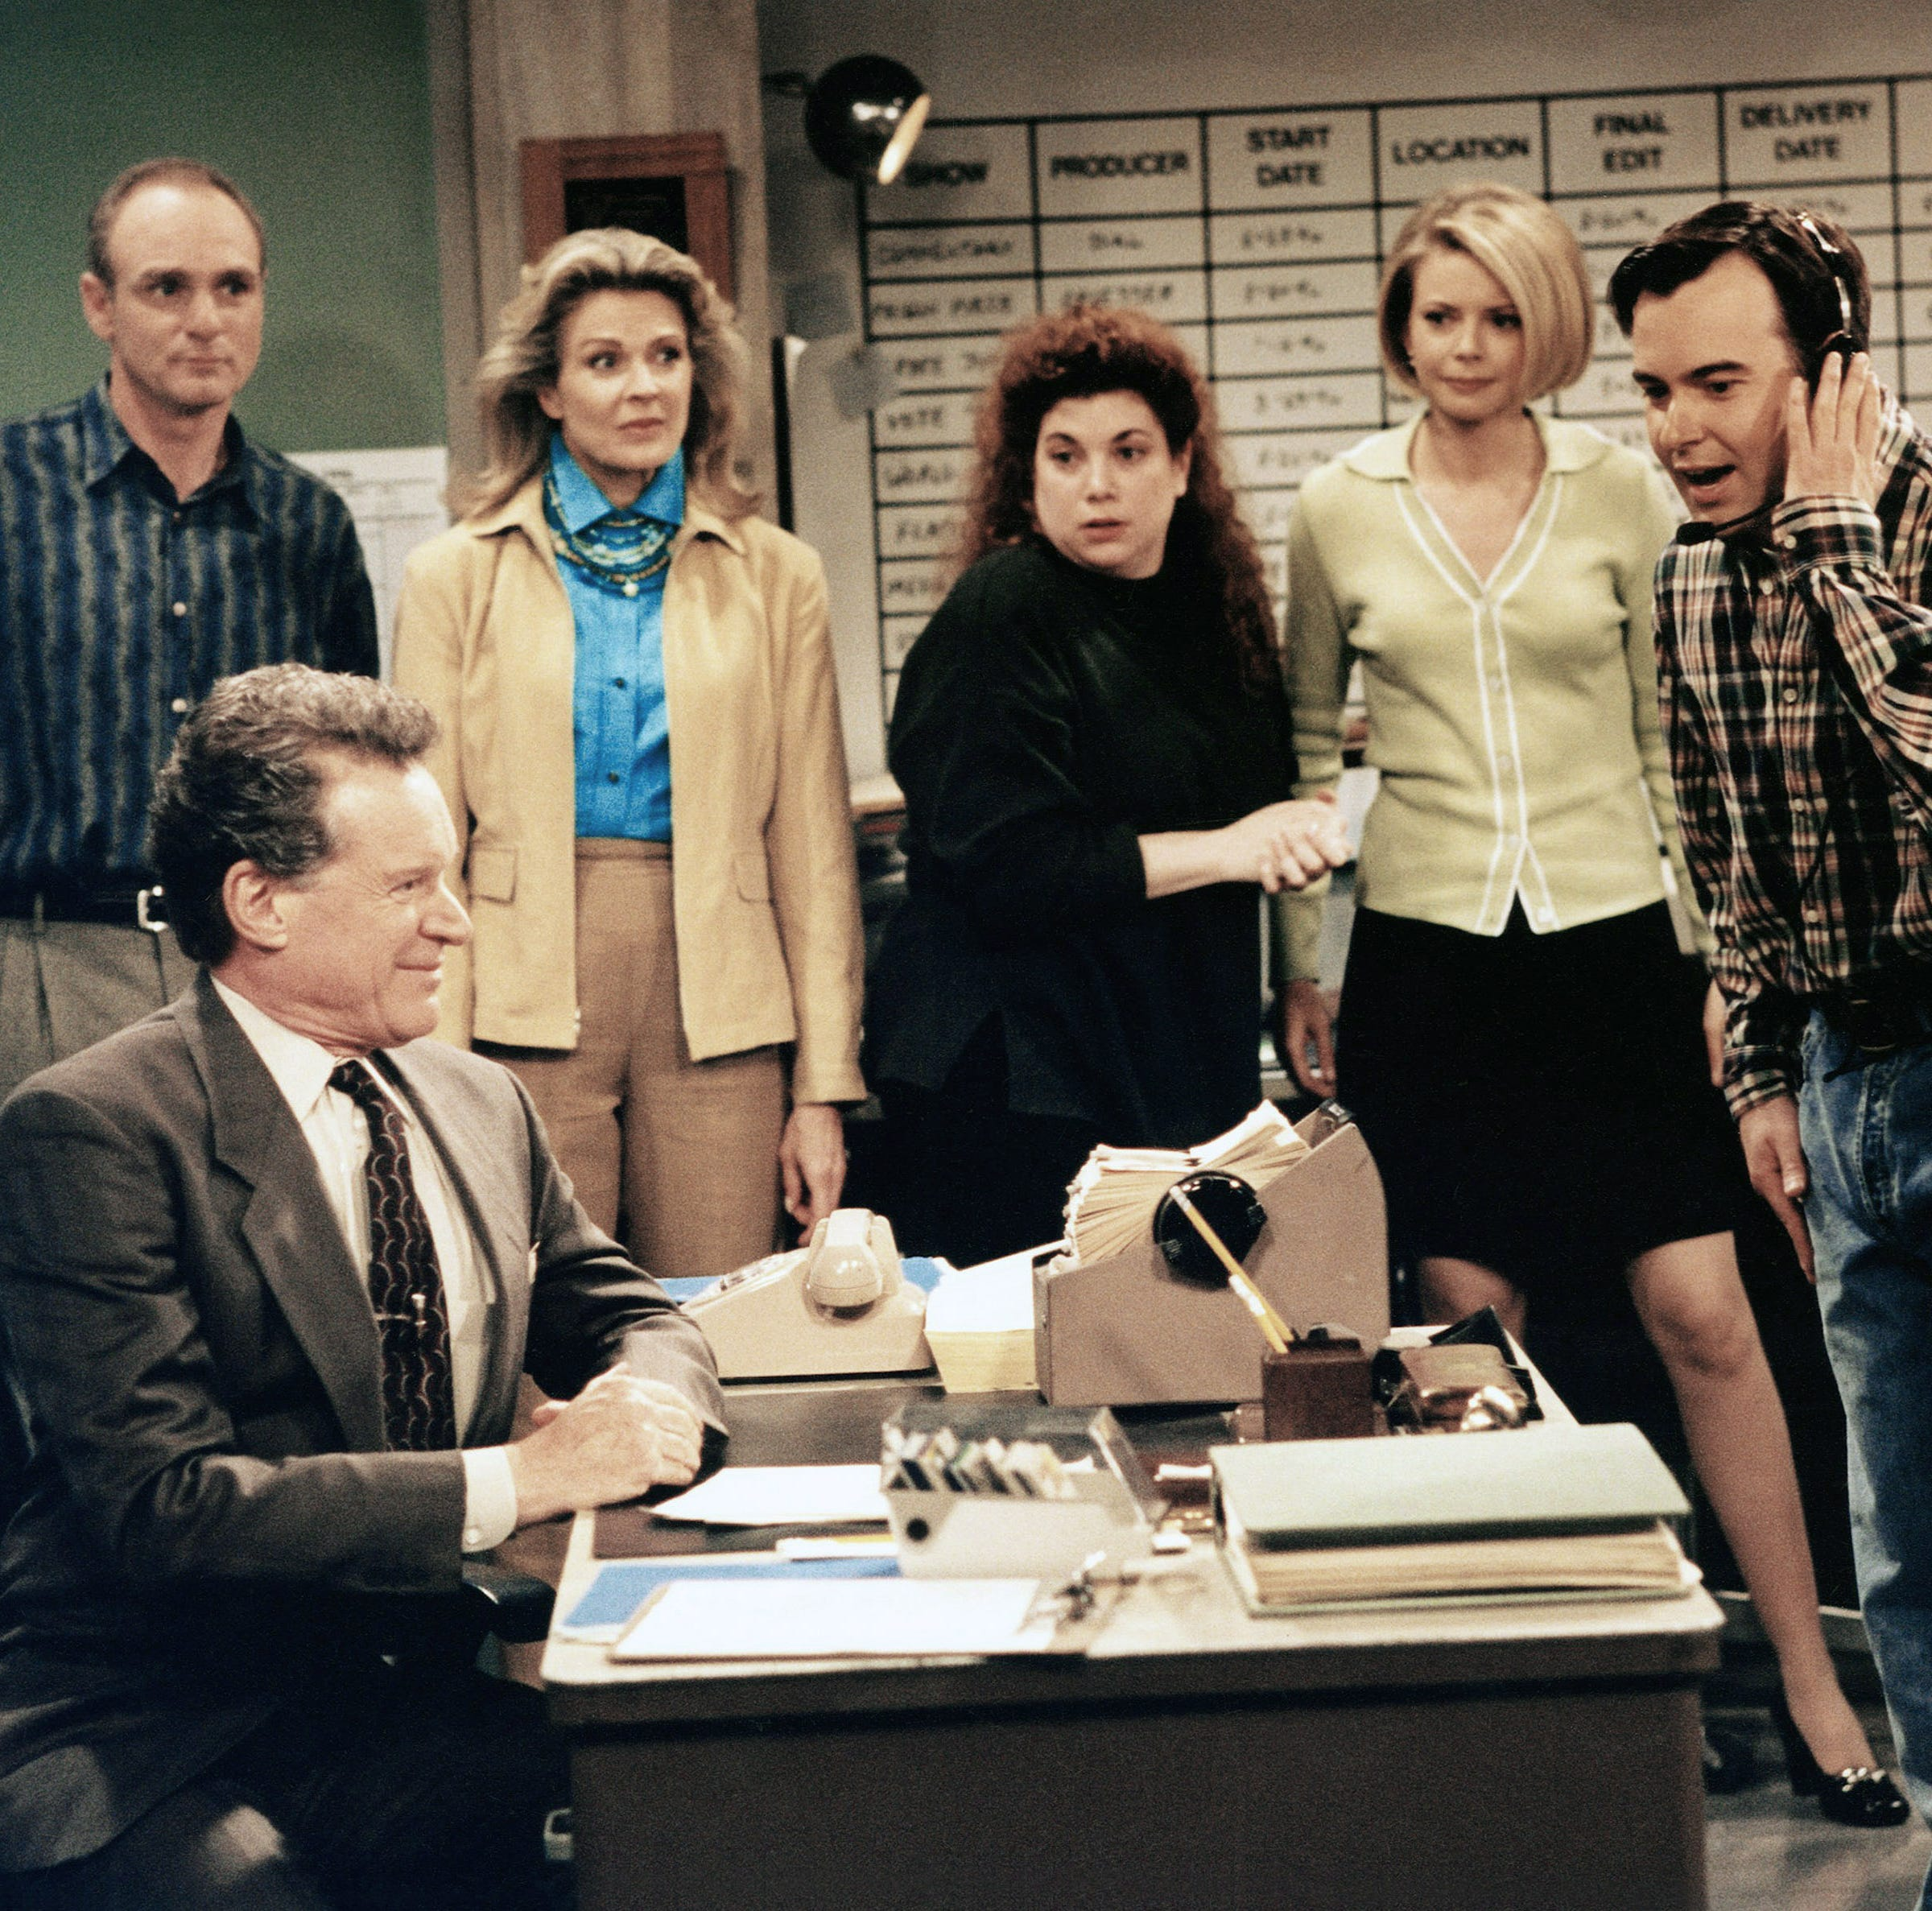 Cast photo of the Murphy Brown cast from 1998. Note the landline phone, rolodex and floppy disks.